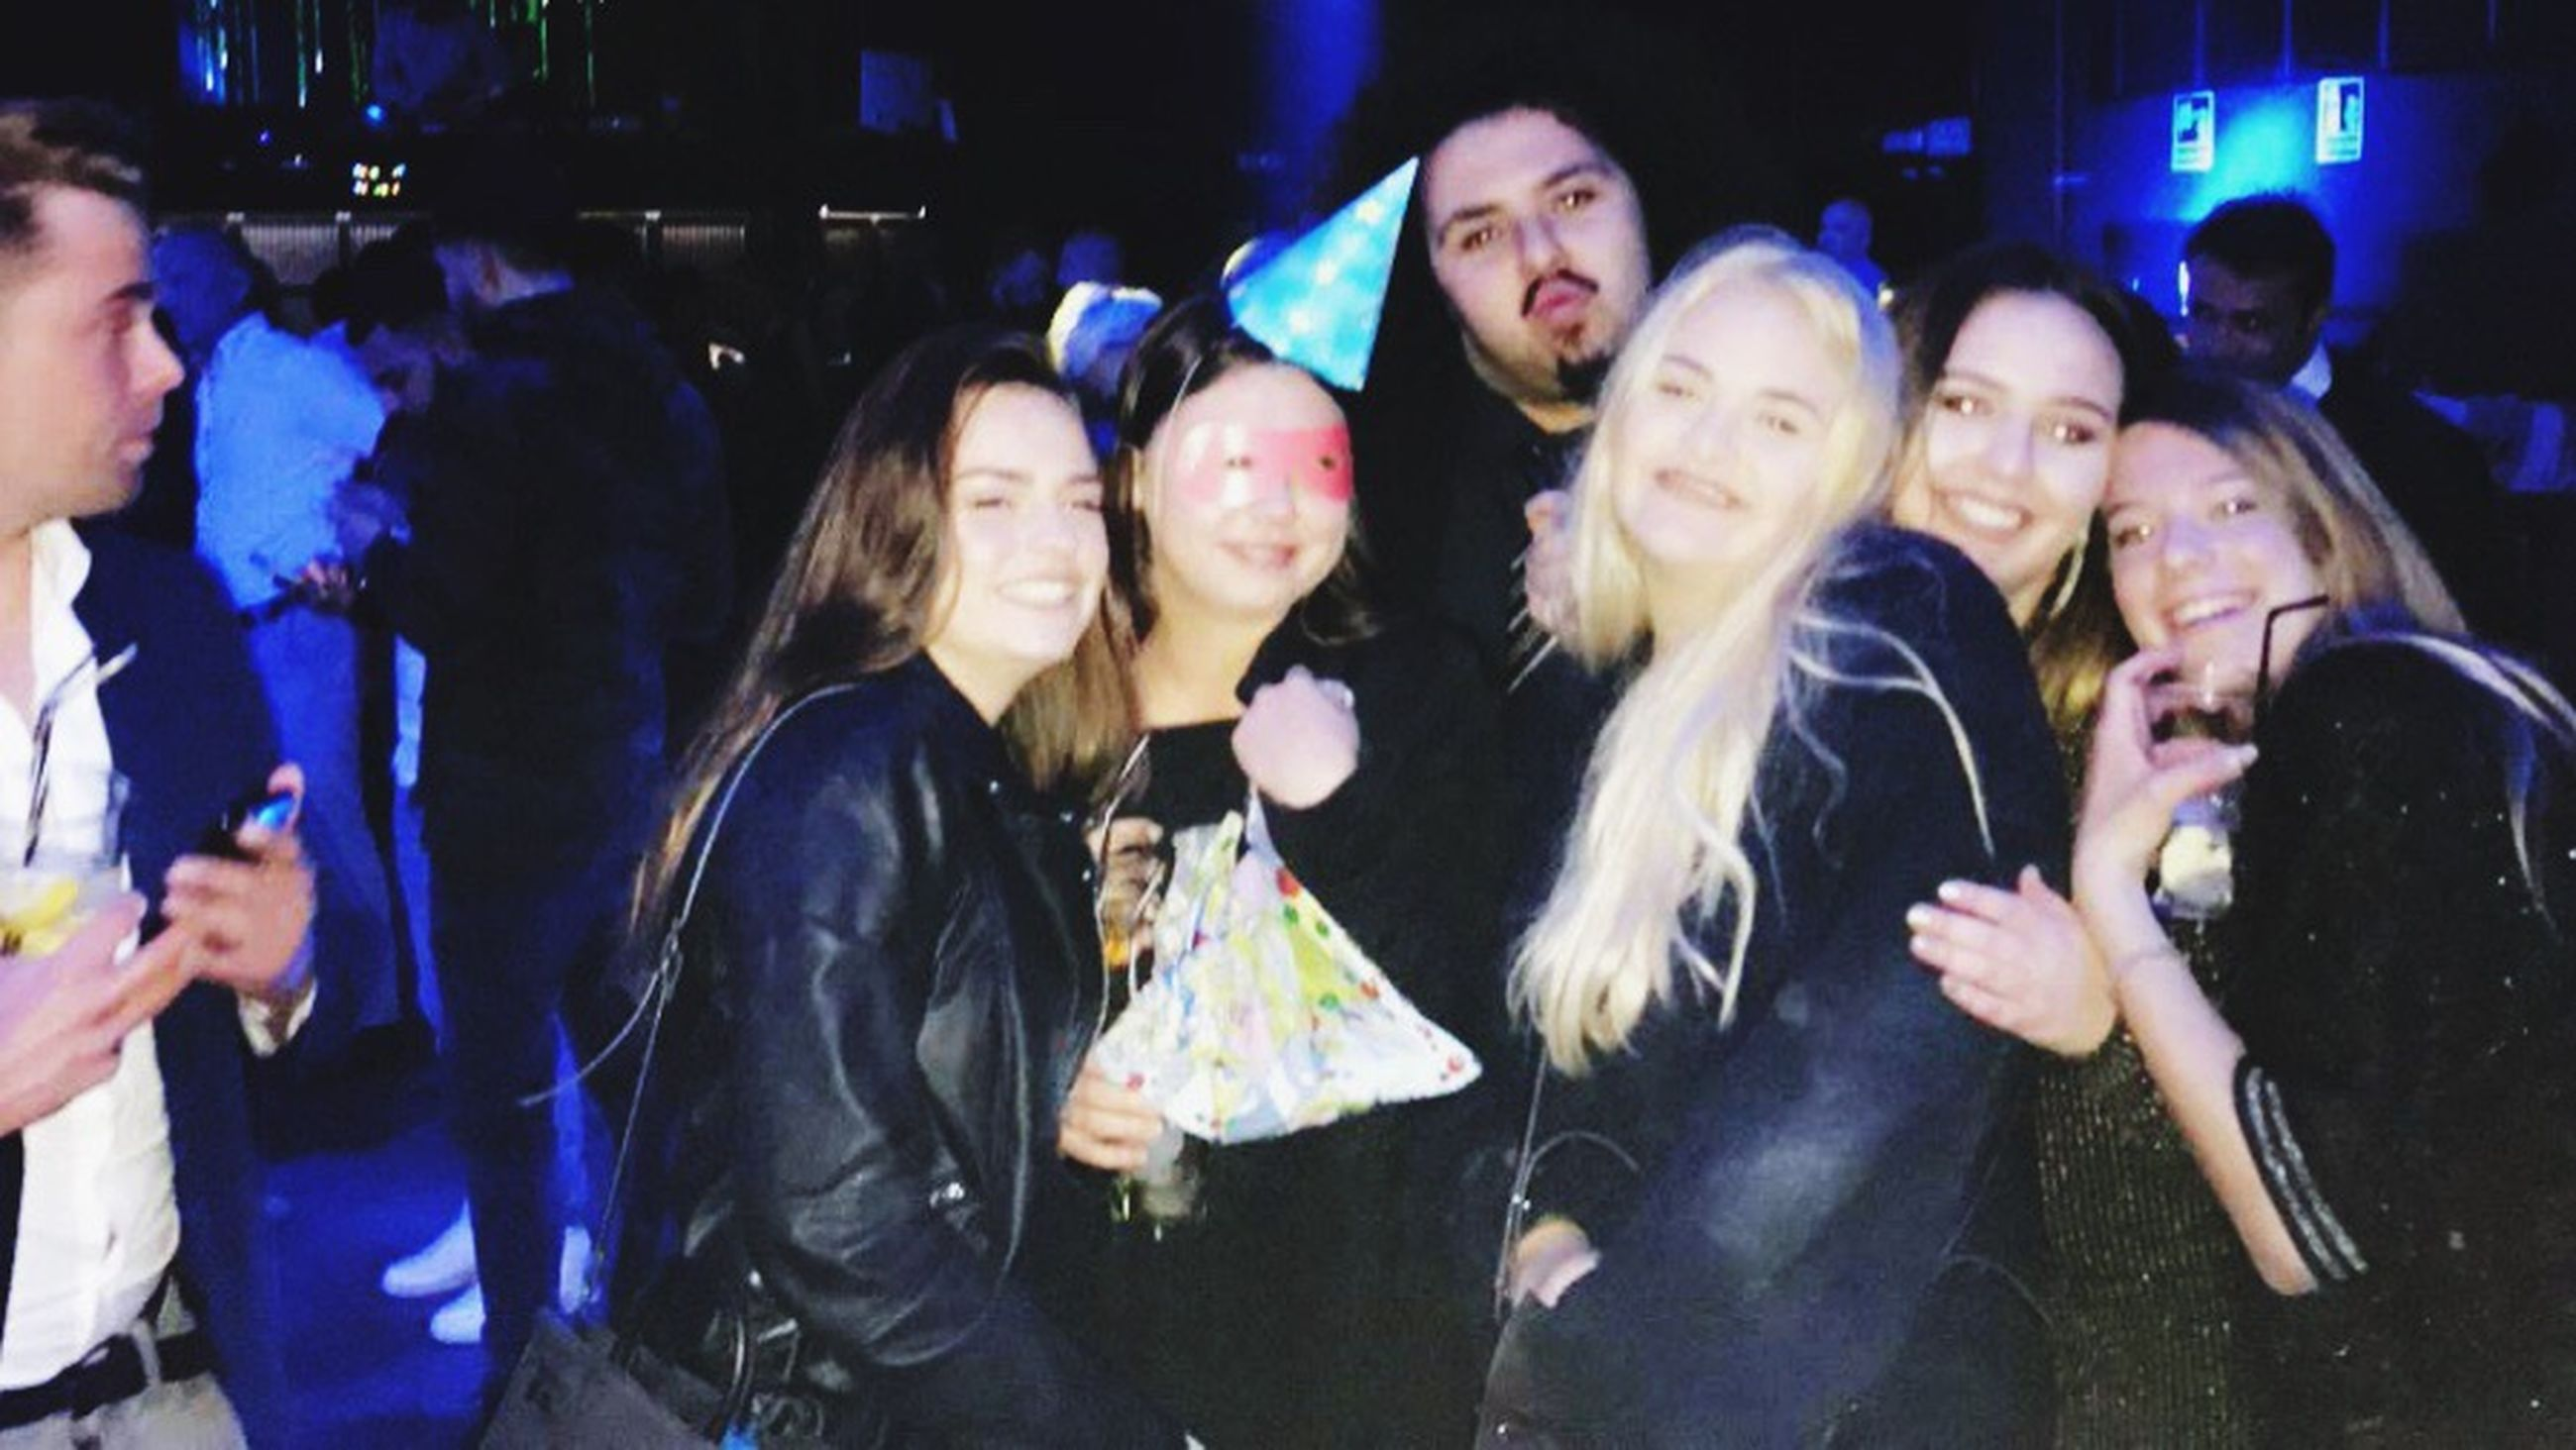 party - social event, nightlife, nightclub, night, fun, dancing, arts culture and entertainment, friendship, glamour, people, leisure activity, indoors, film industry, motion, togetherness, young adult, adults only, dance floor, happy hour, adult